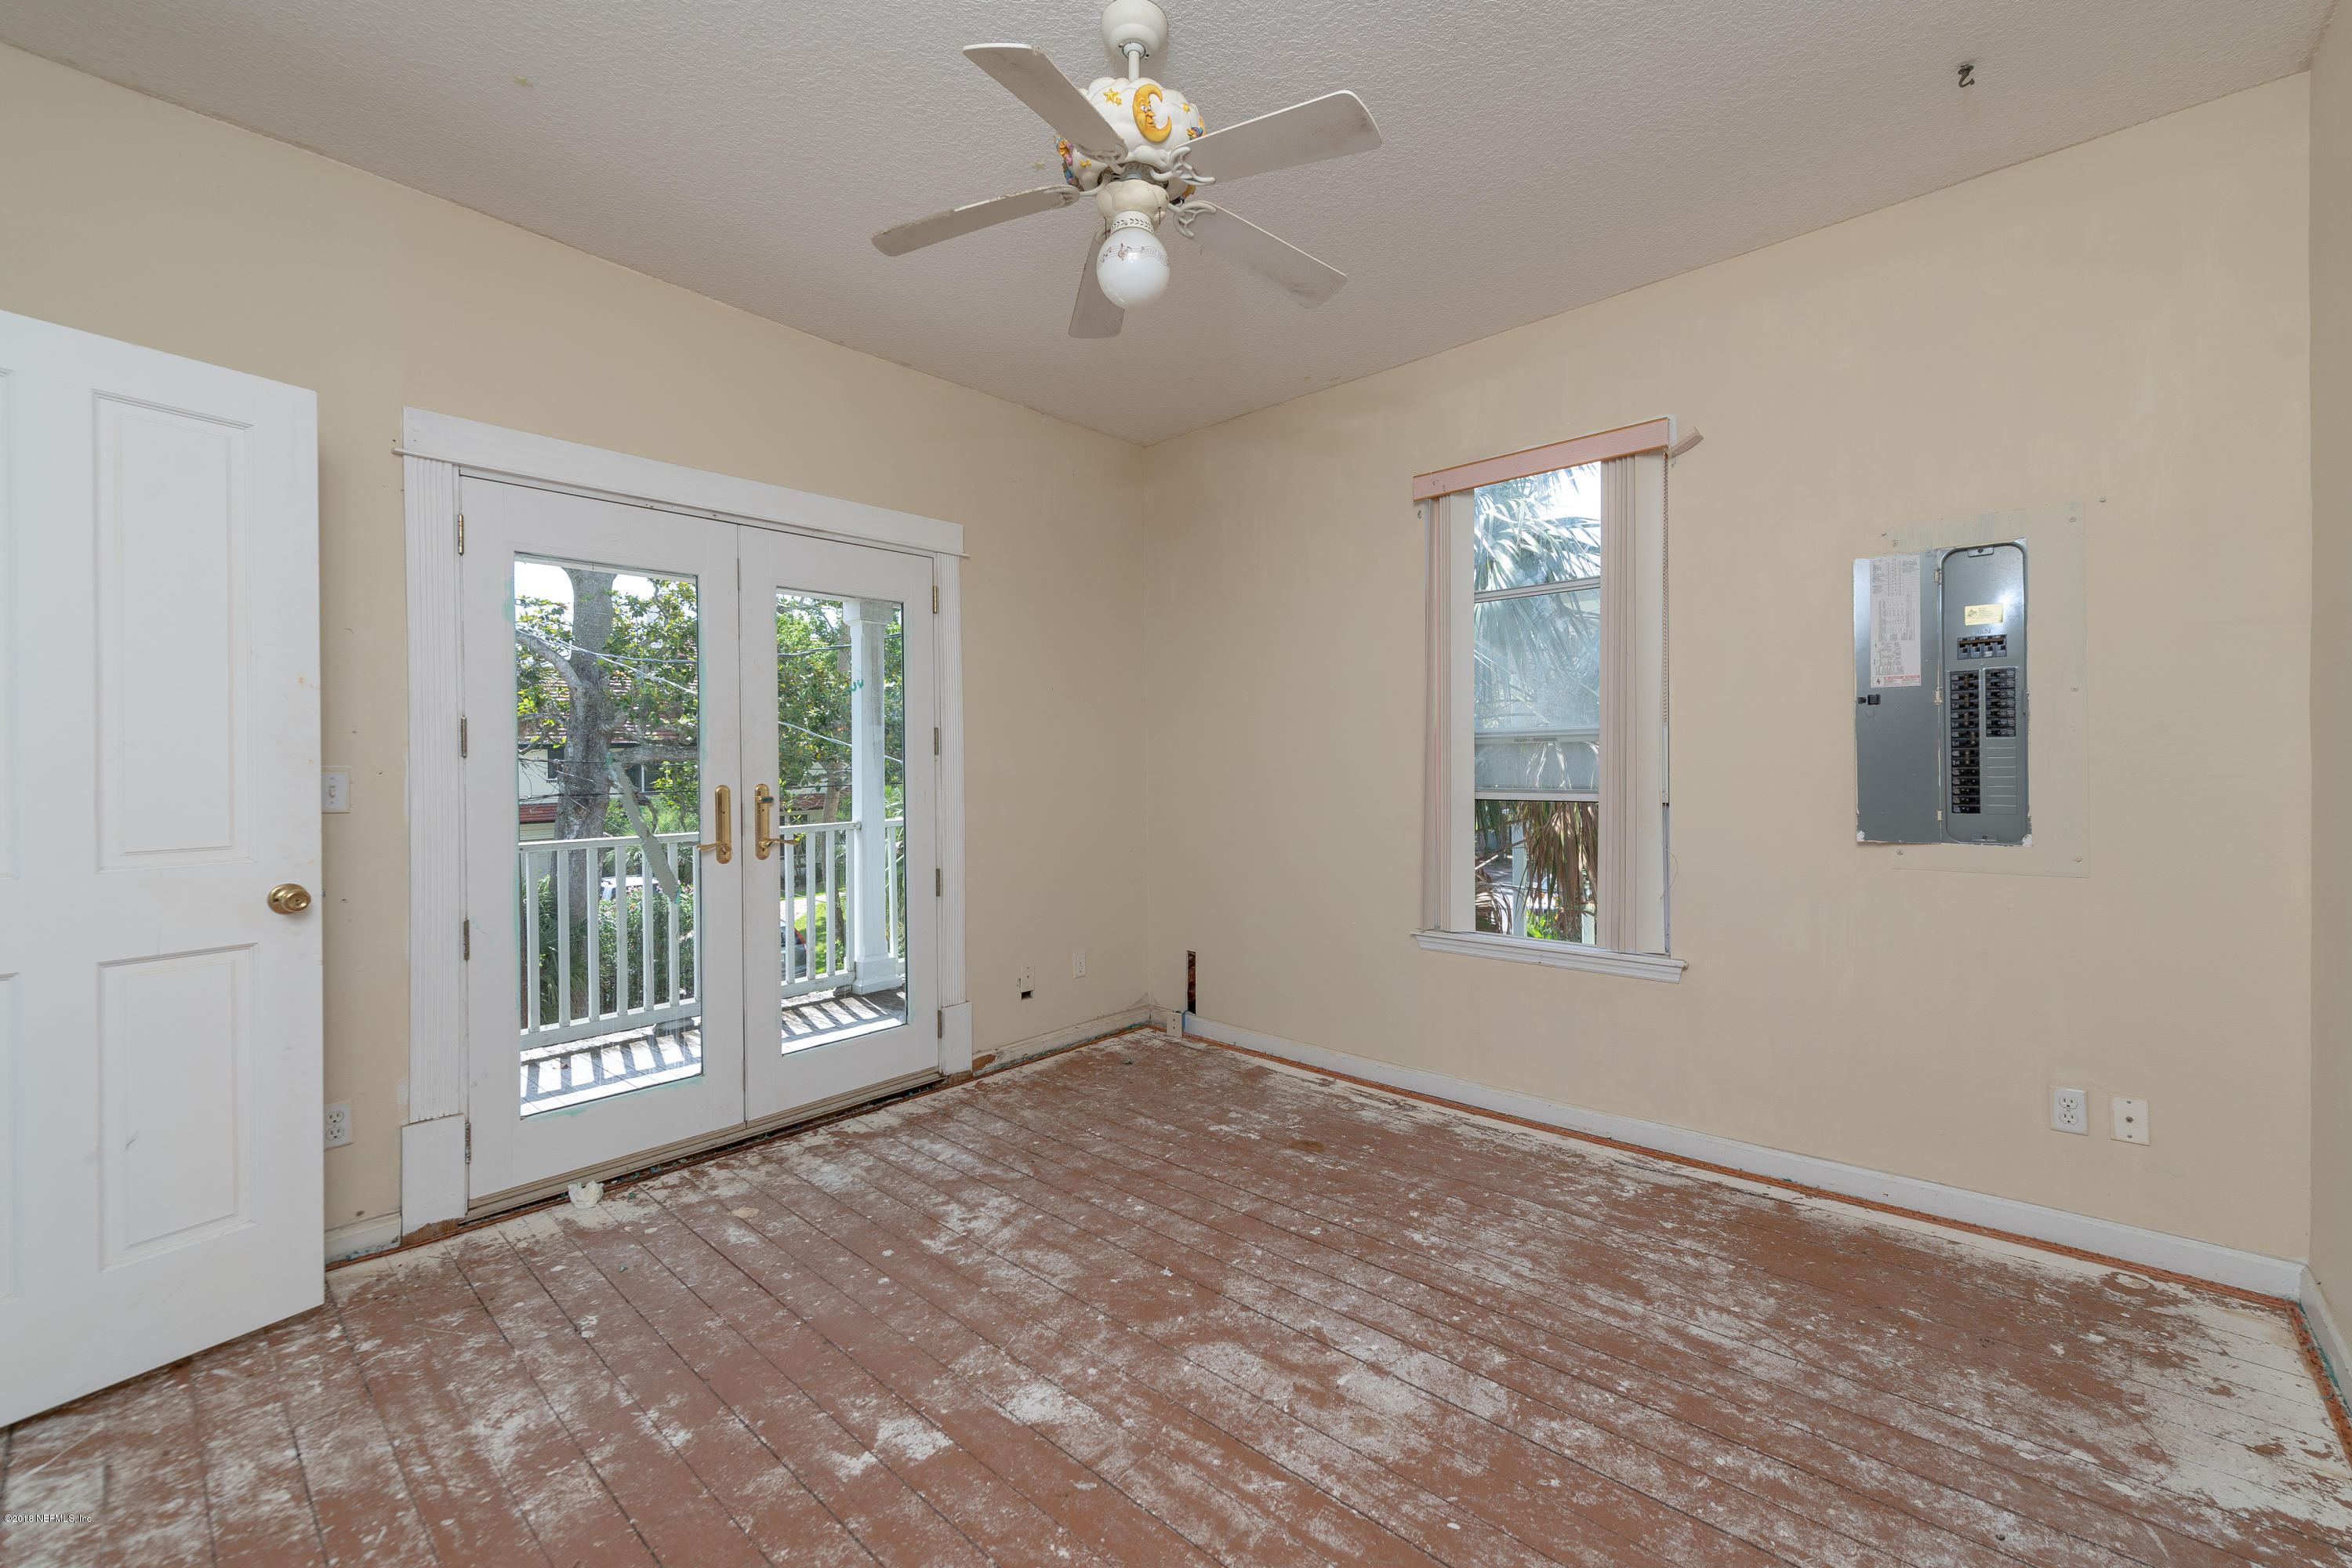 56 WATER, ST AUGUSTINE, FLORIDA 32084, 5 Bedrooms Bedrooms, ,2 BathroomsBathrooms,Residential - single family,For sale,WATER,938875